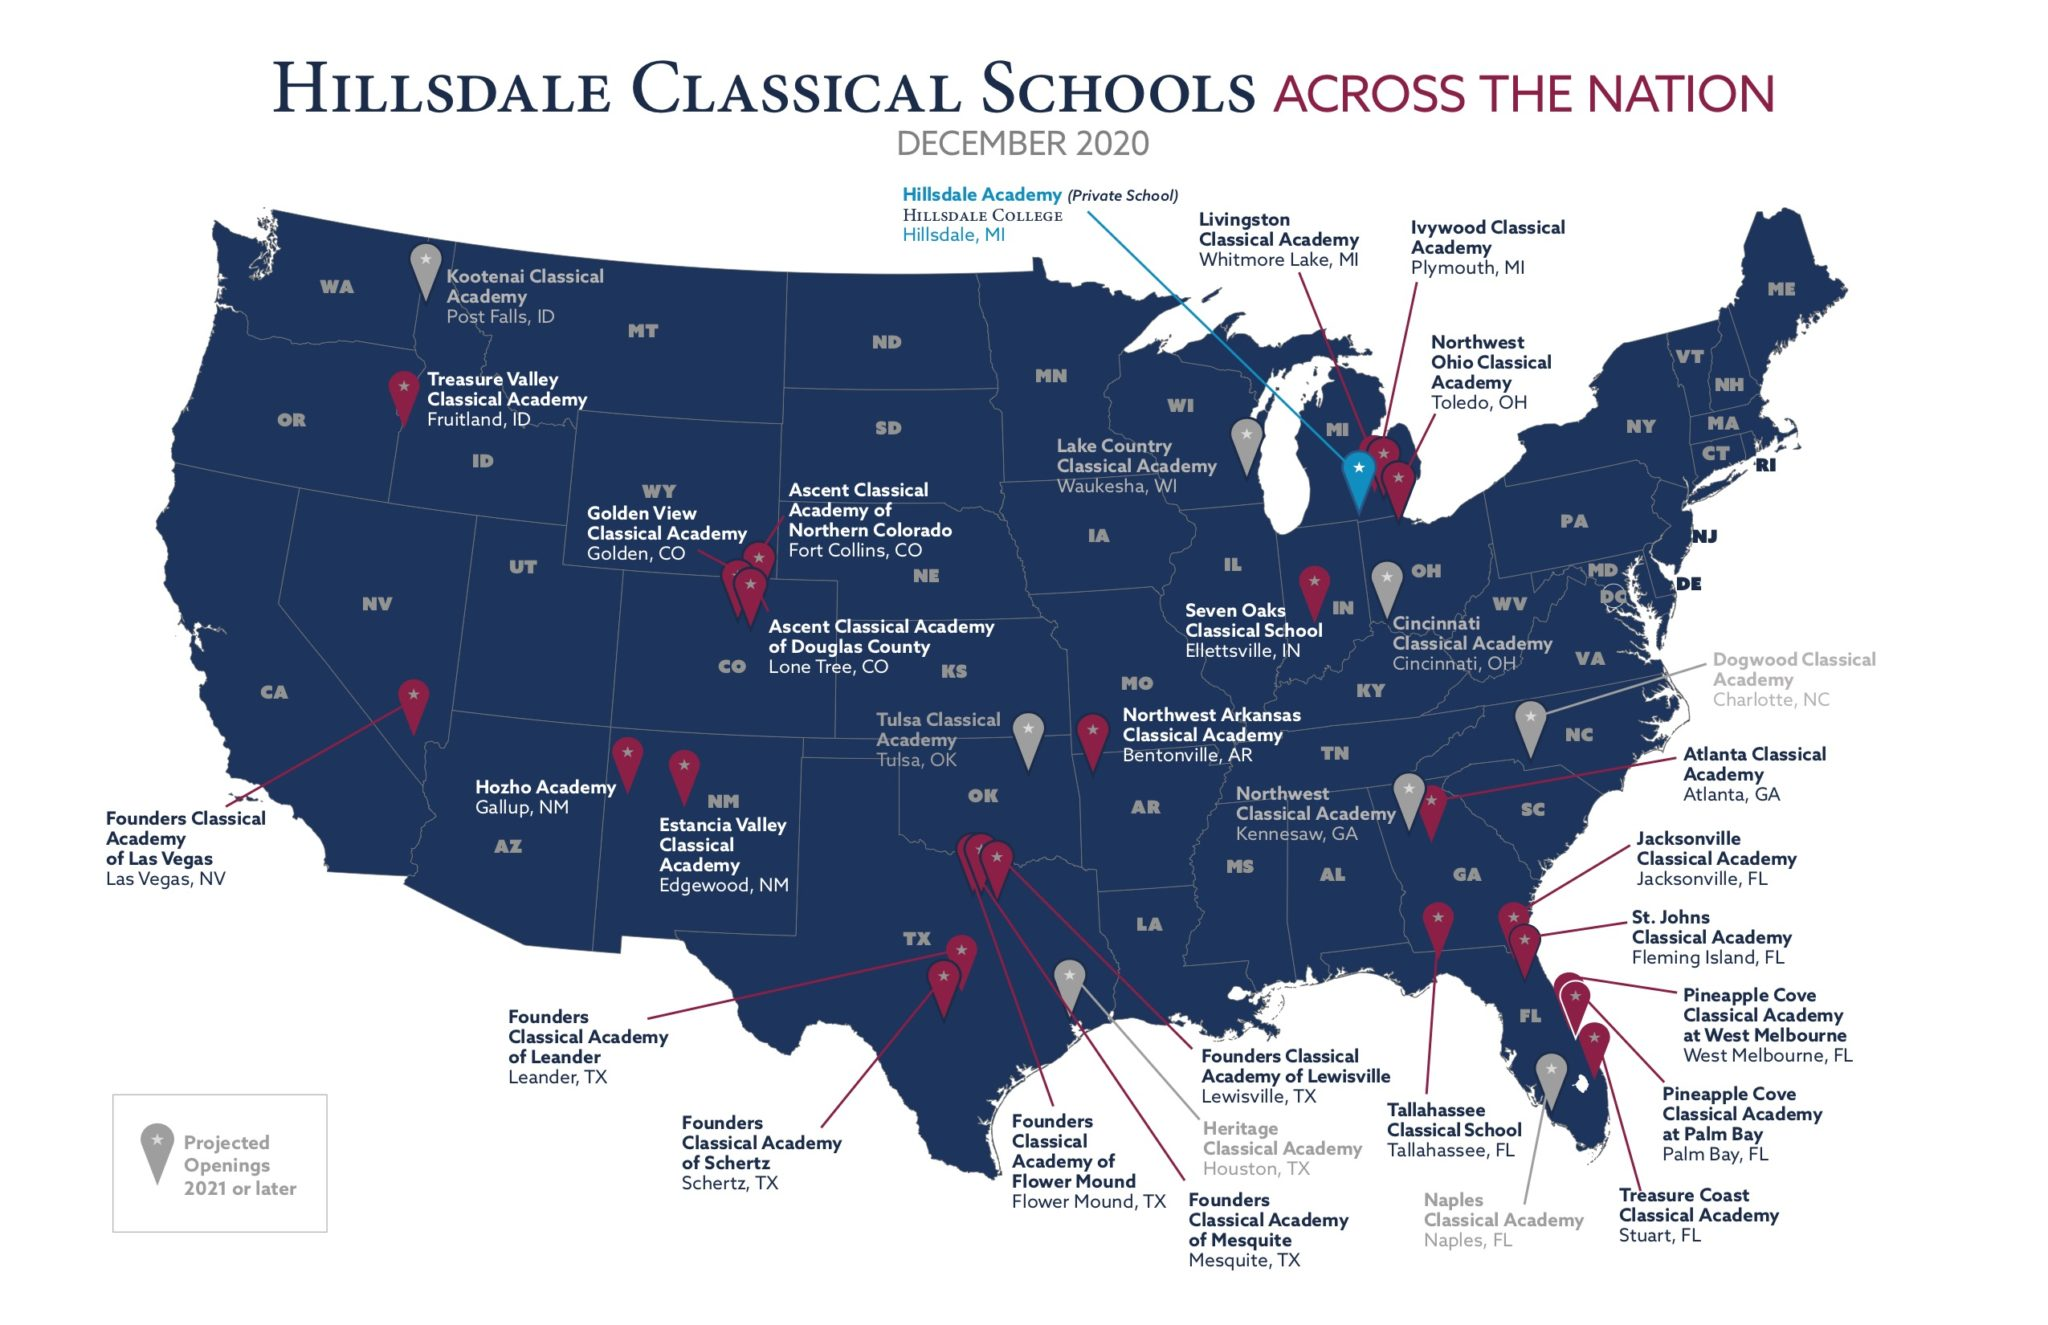 Hillsdale Classical Schools Across the Nation